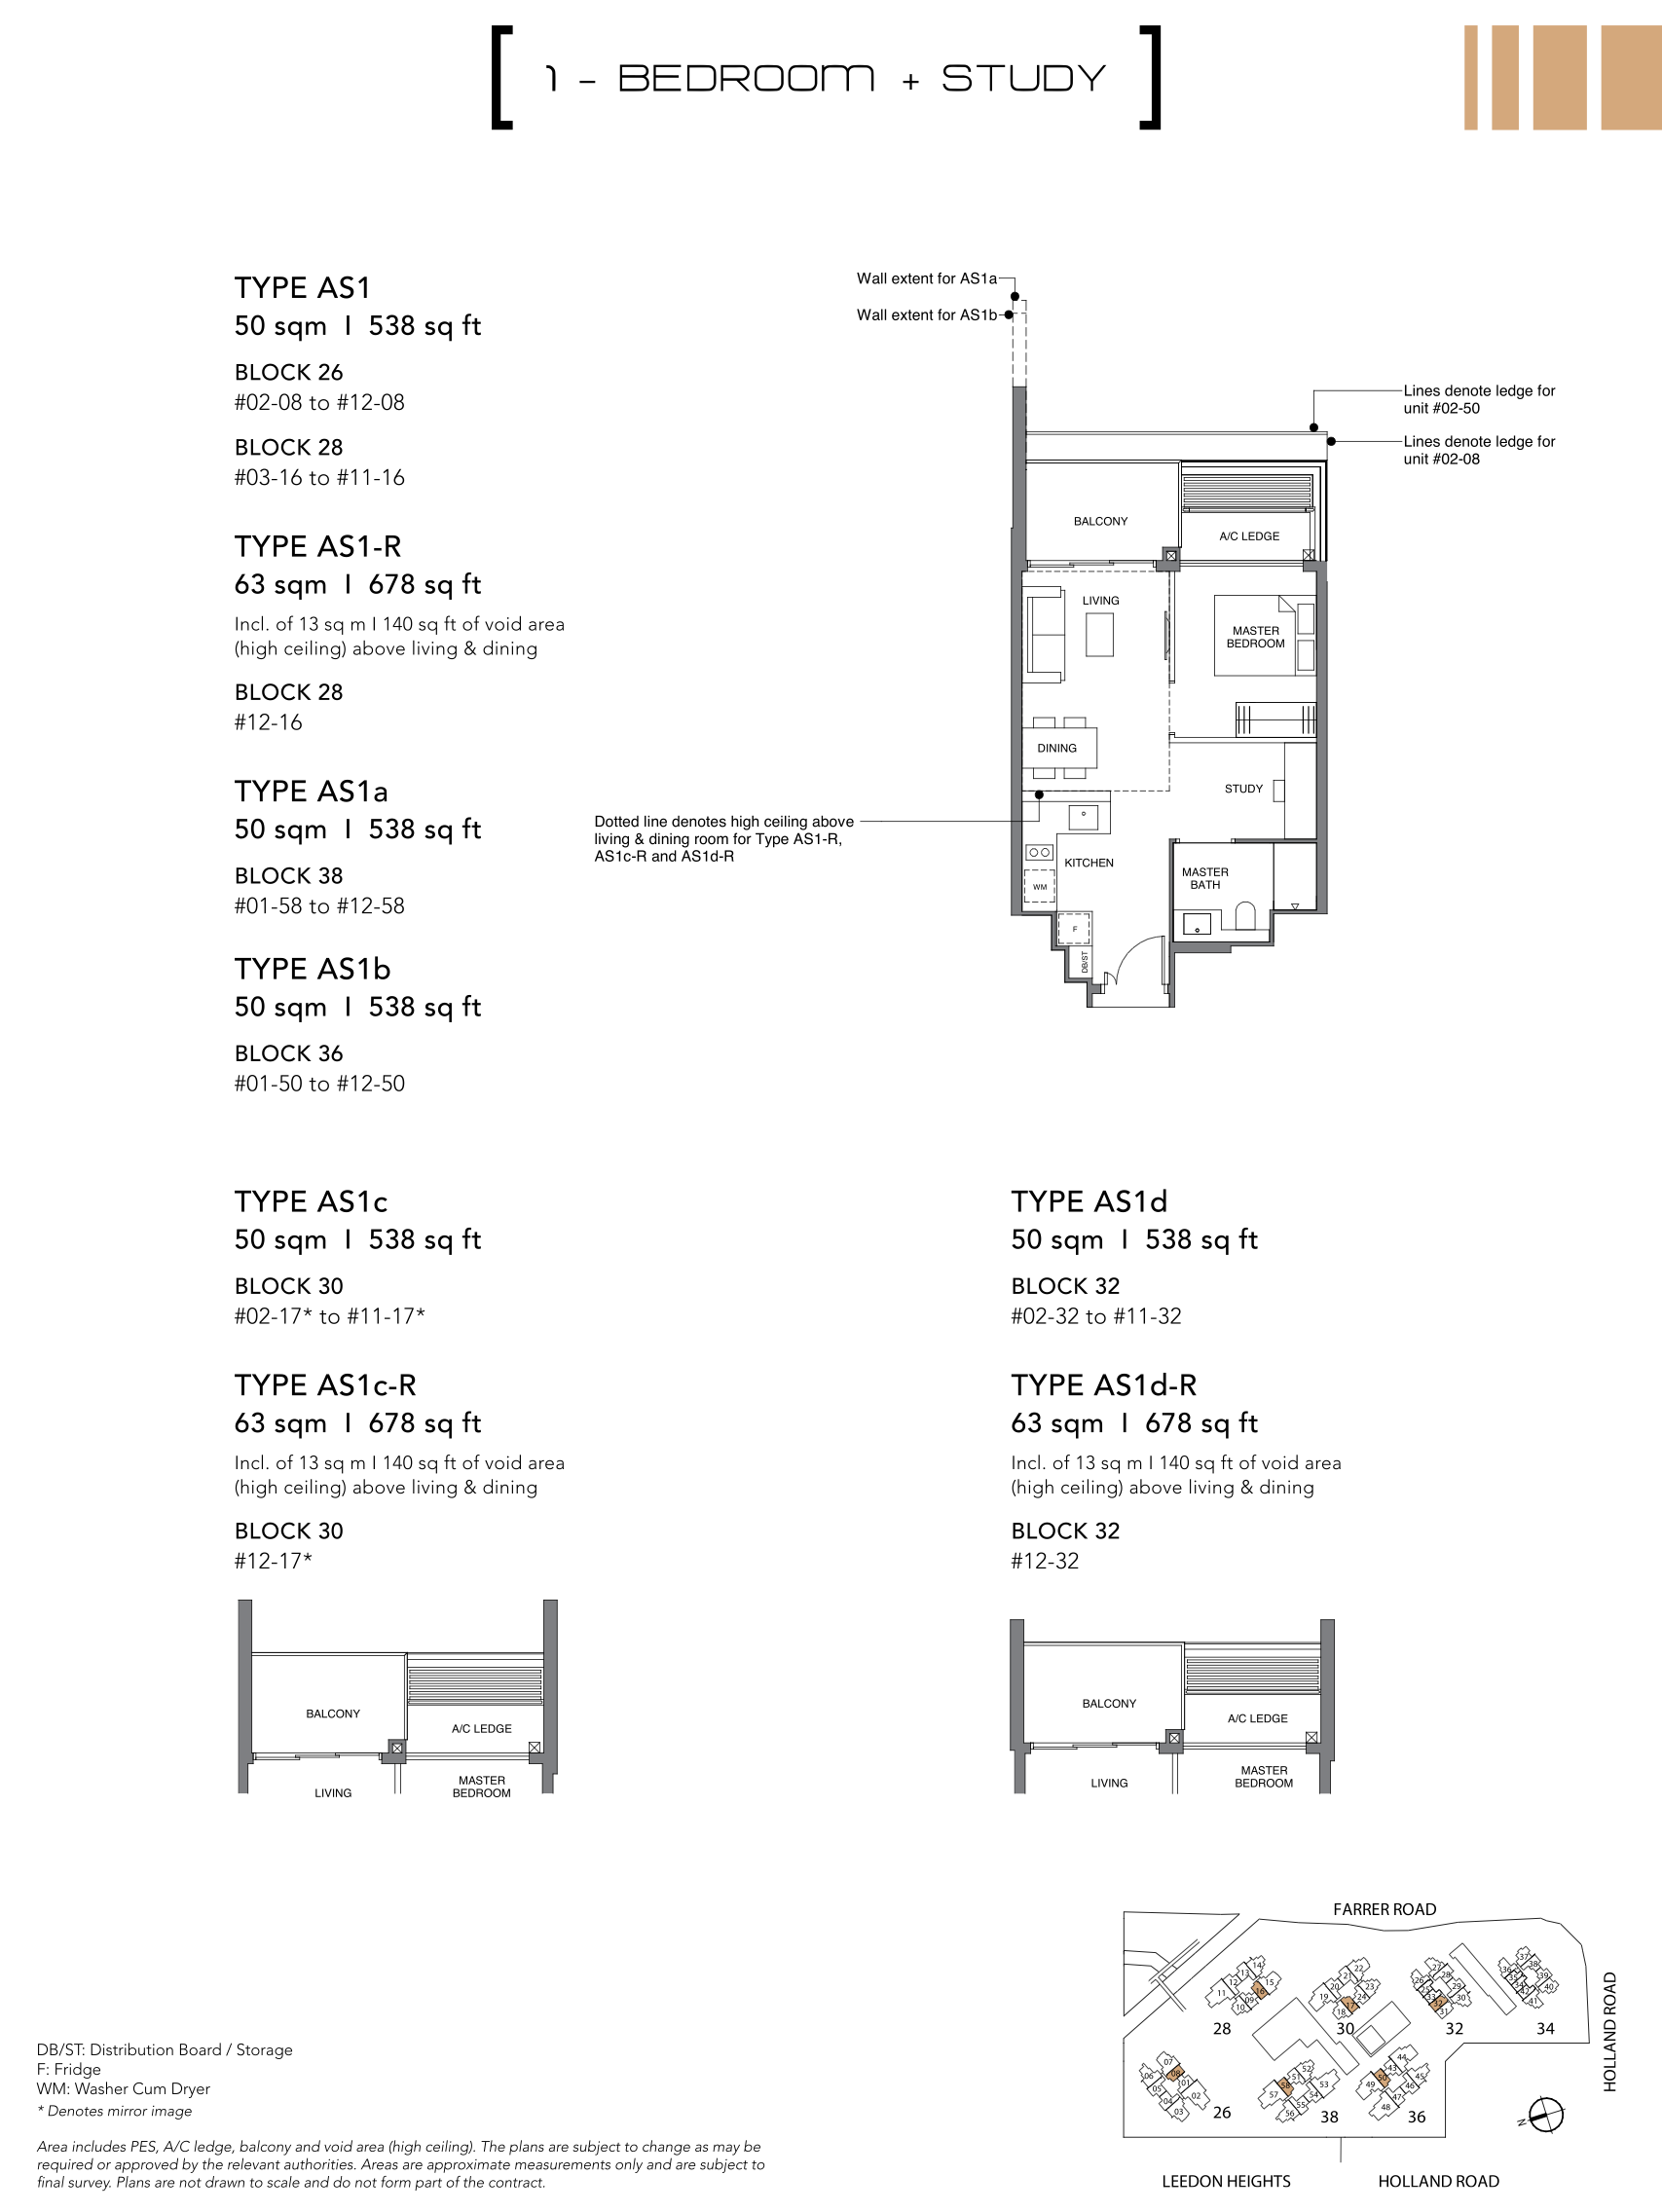 绿墩雅苑公寓户型图 Leedon Green floor plan 1 bedroom + study AS1